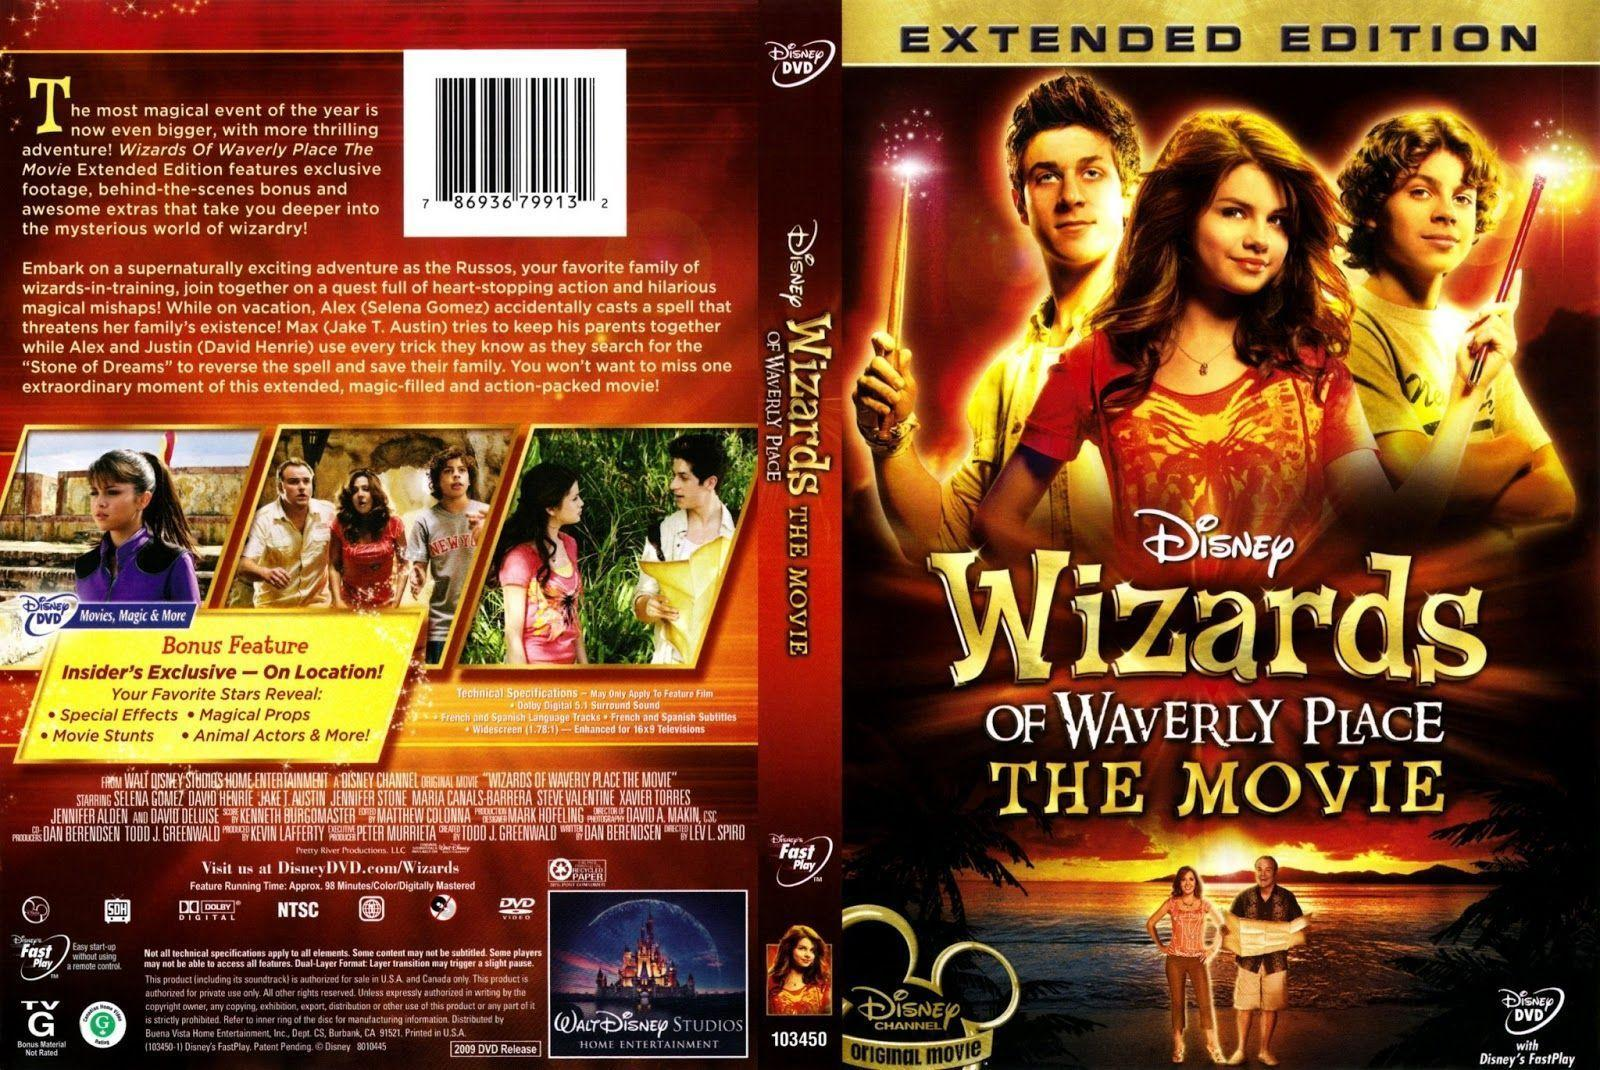 Wizards Of Waverly Place The Movie Wallpapers Wallpaper Cave